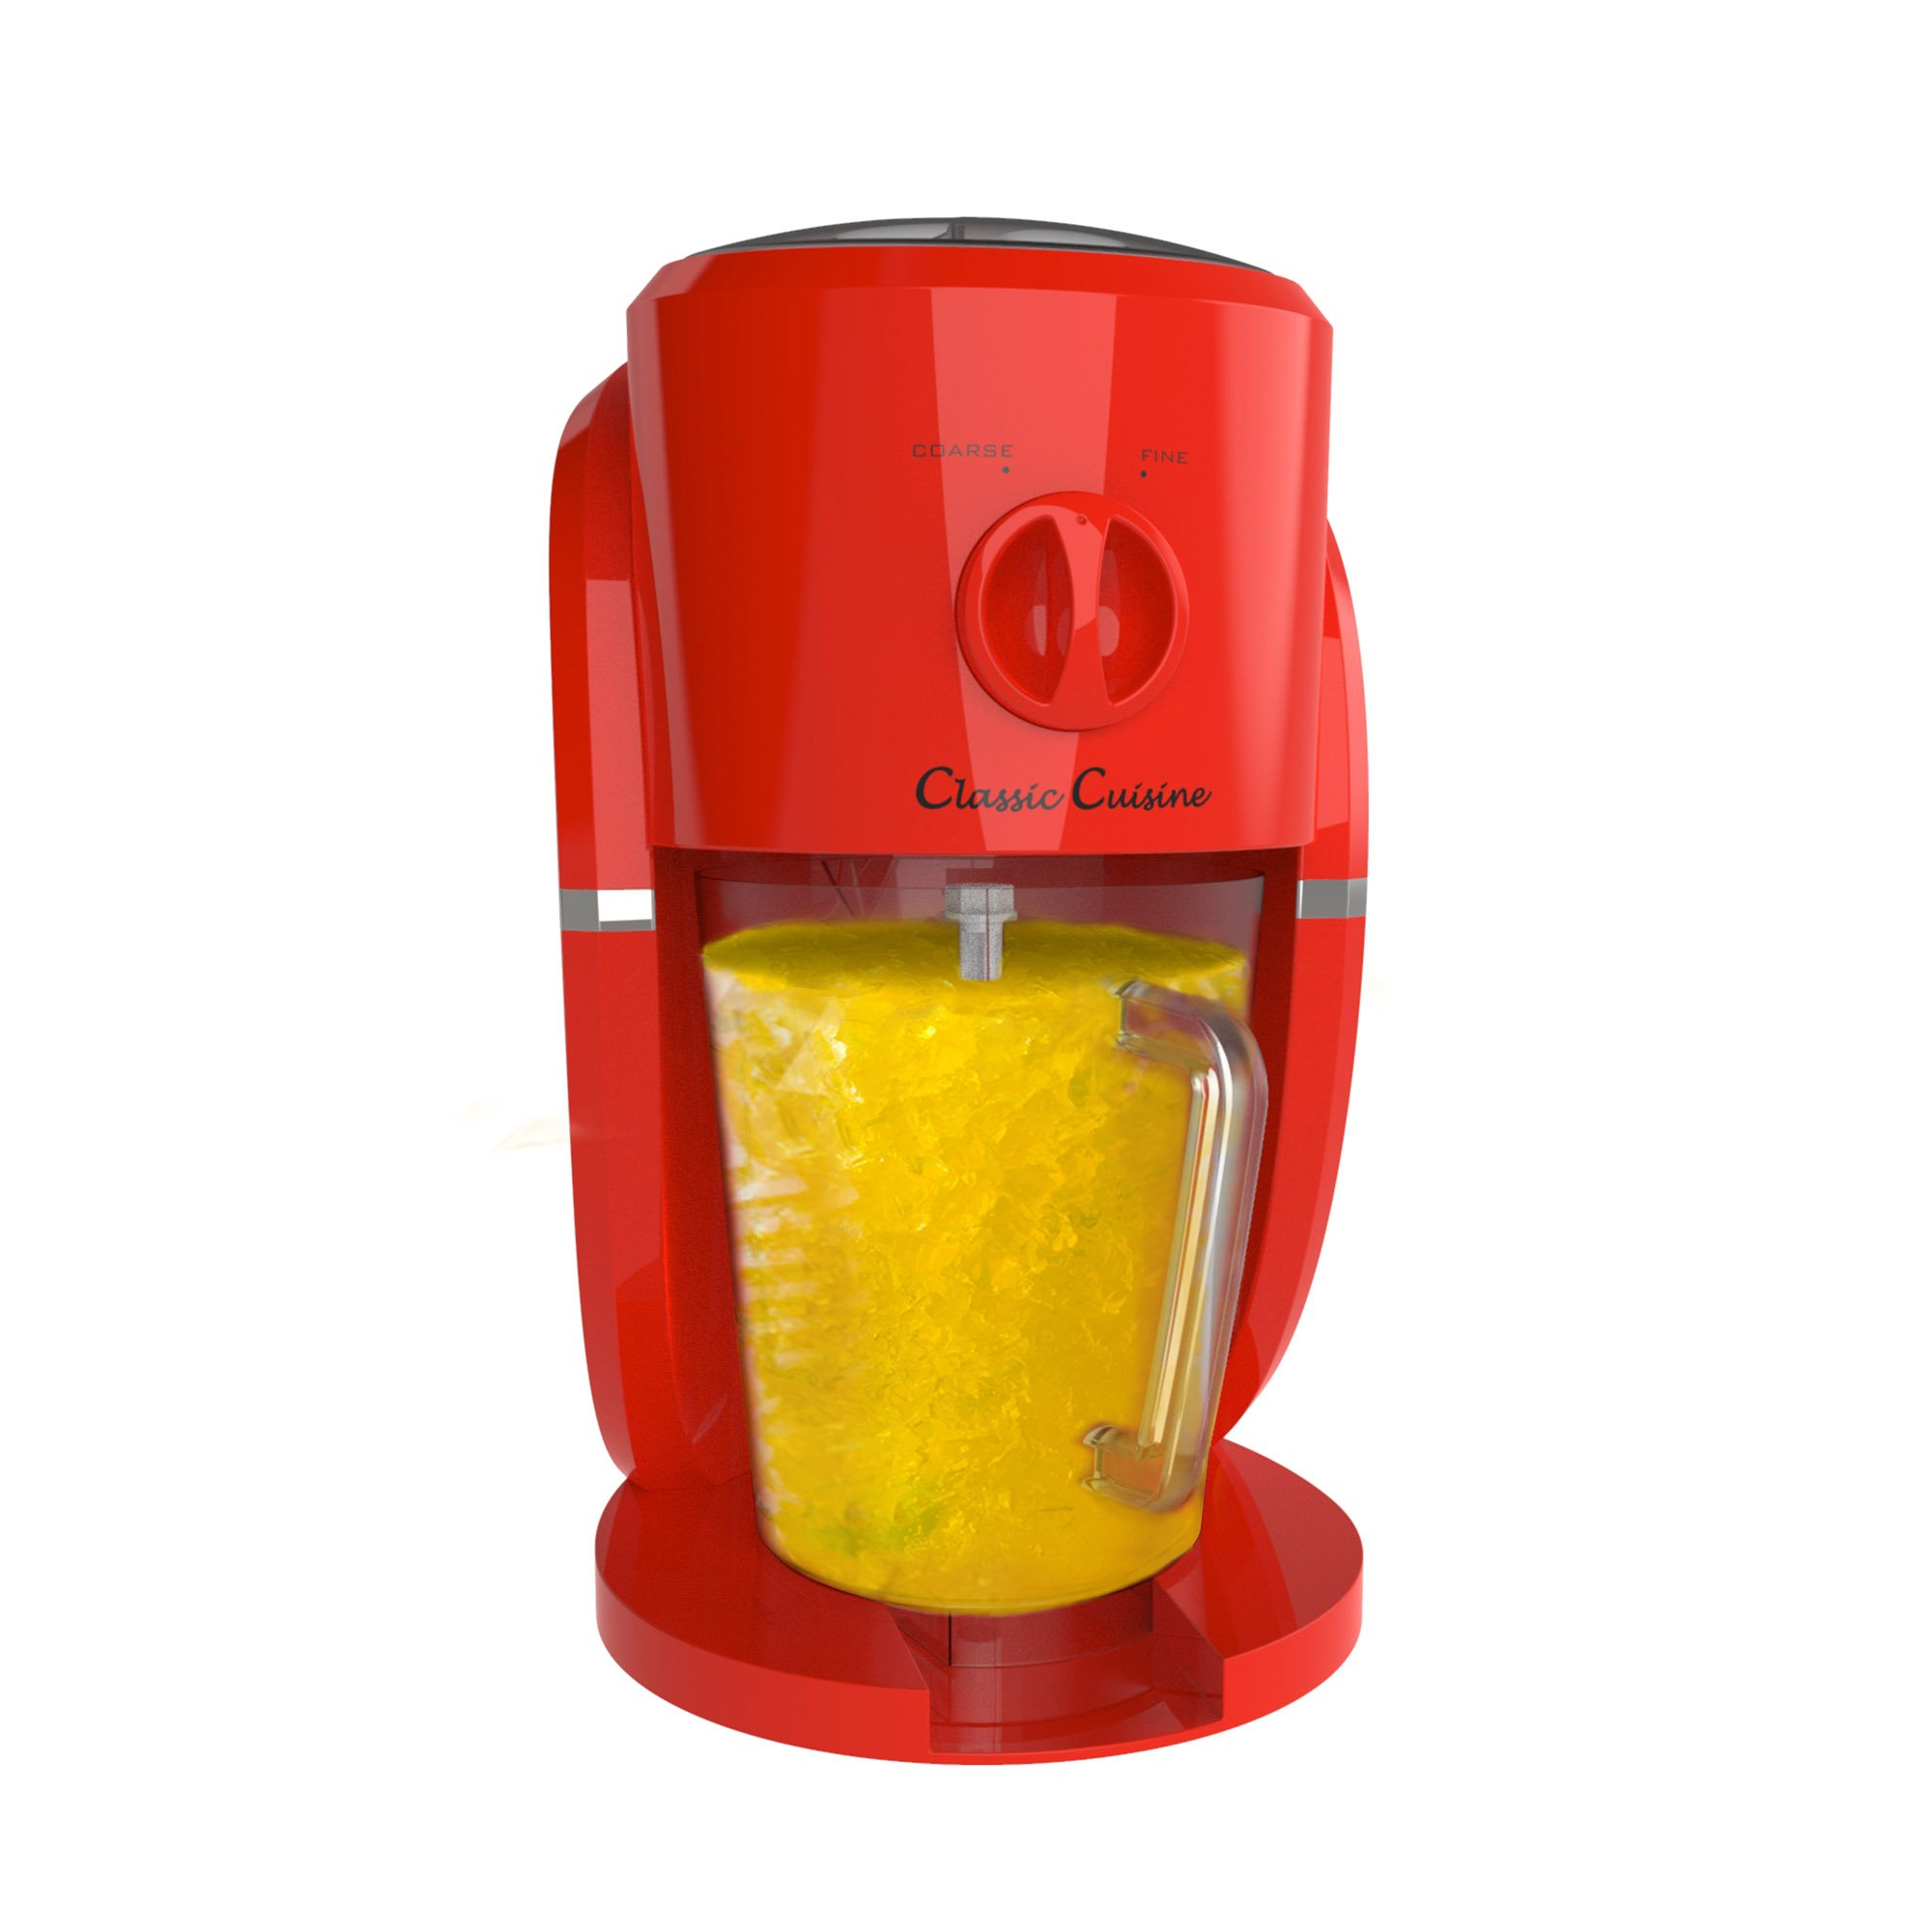 Frozen Drink Maker, Mixer and Ice Crusher Machine for Margaritas, Pina Coladas, Daiquiris, Shaved Ice Treats or Slushy Desserts by Classic Cuisine by Classic Cuisine (Image #6)